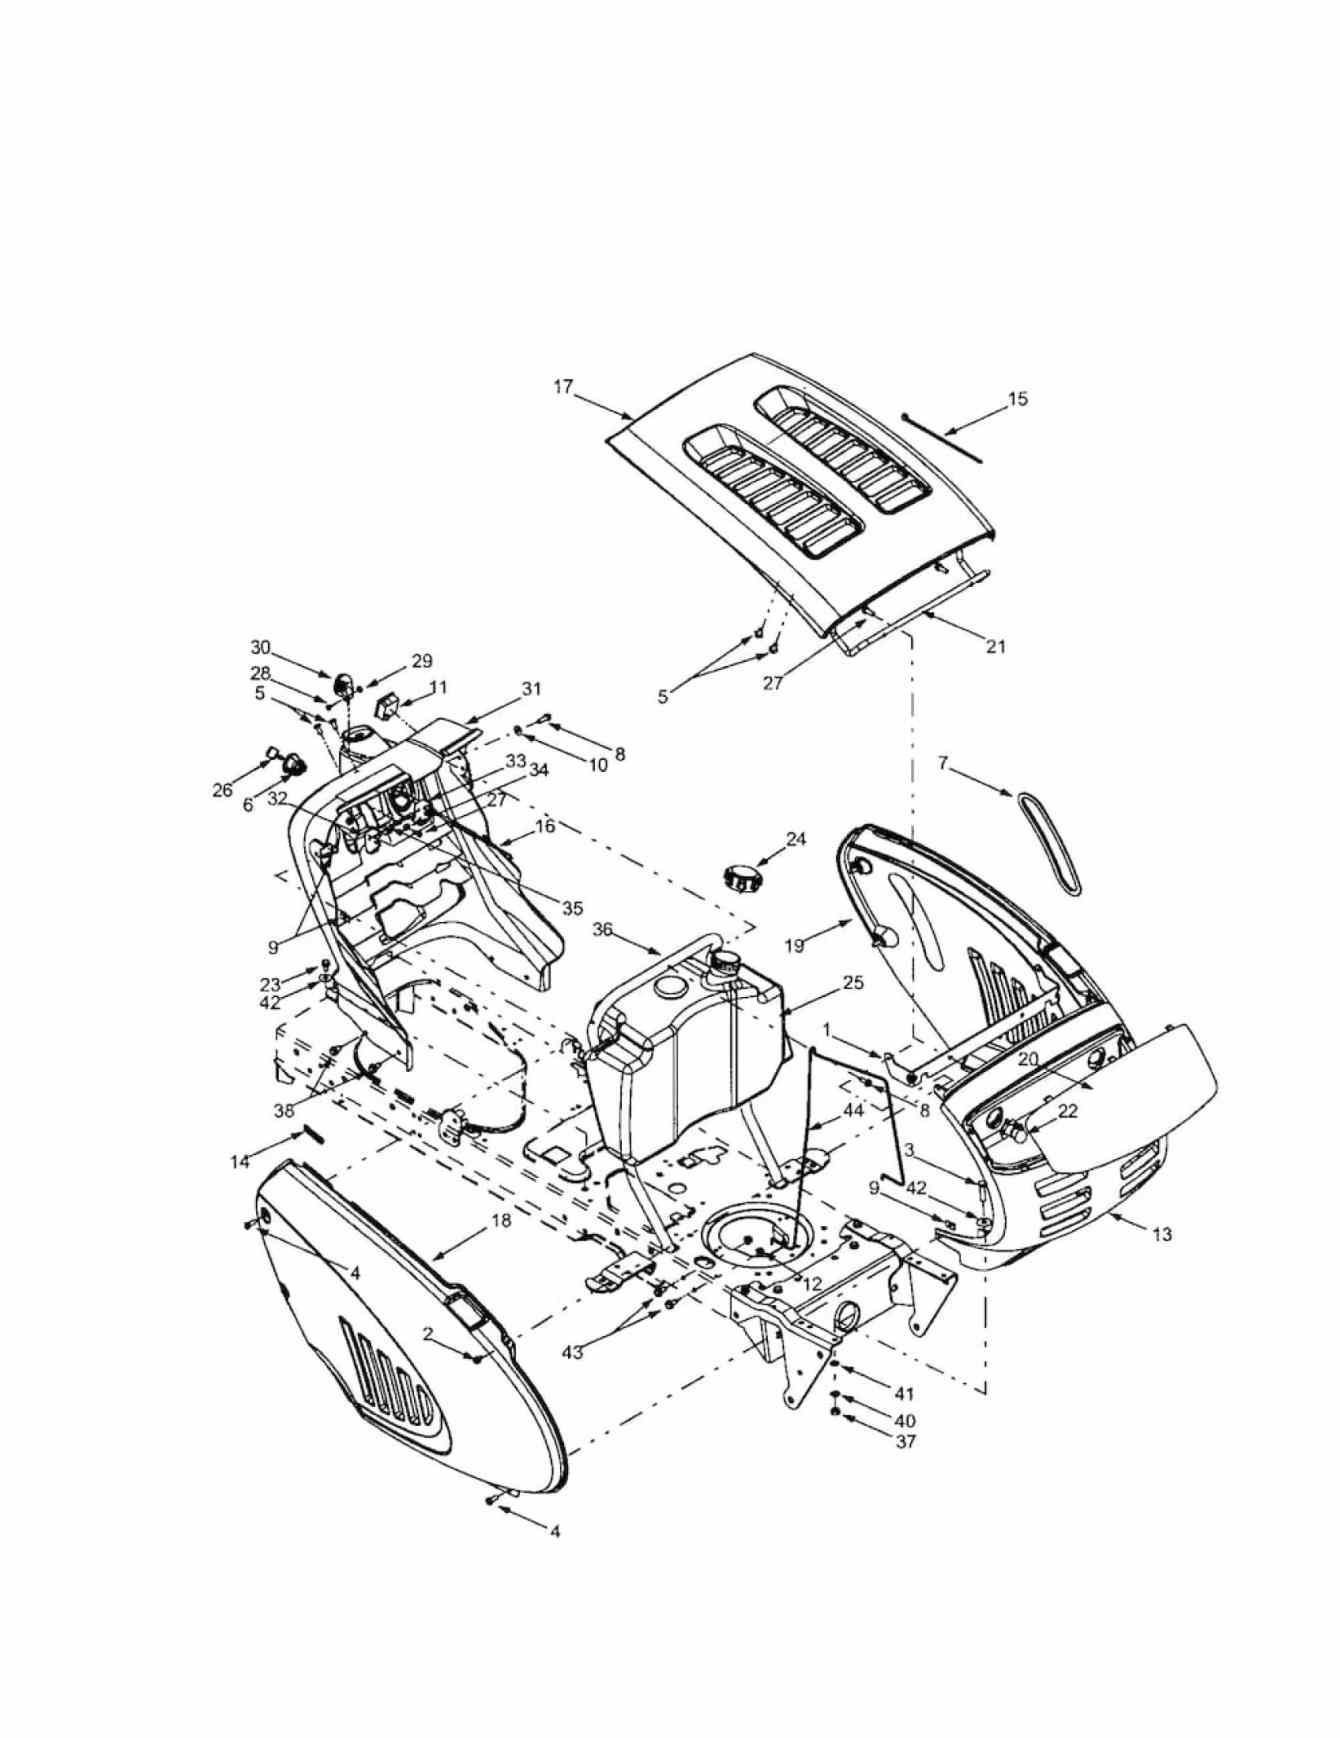 Self Propelled Mower Diagram. Catalog. Auto Parts Catalog